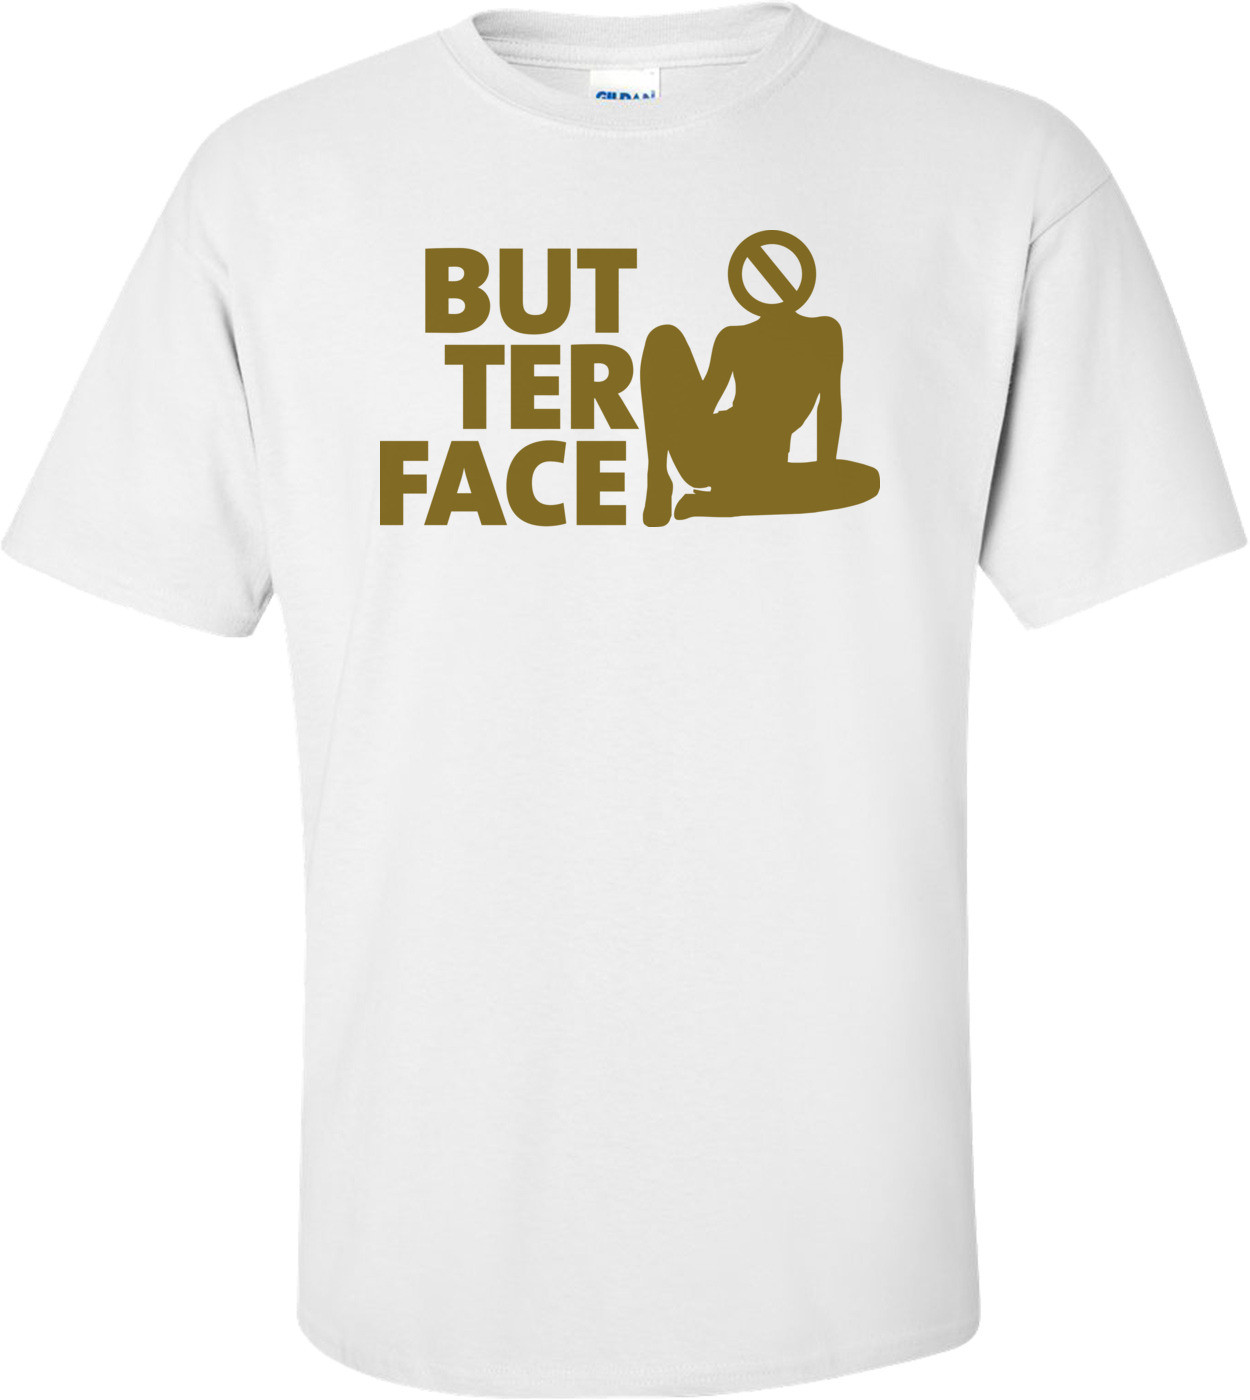 Butter Face T-shirt